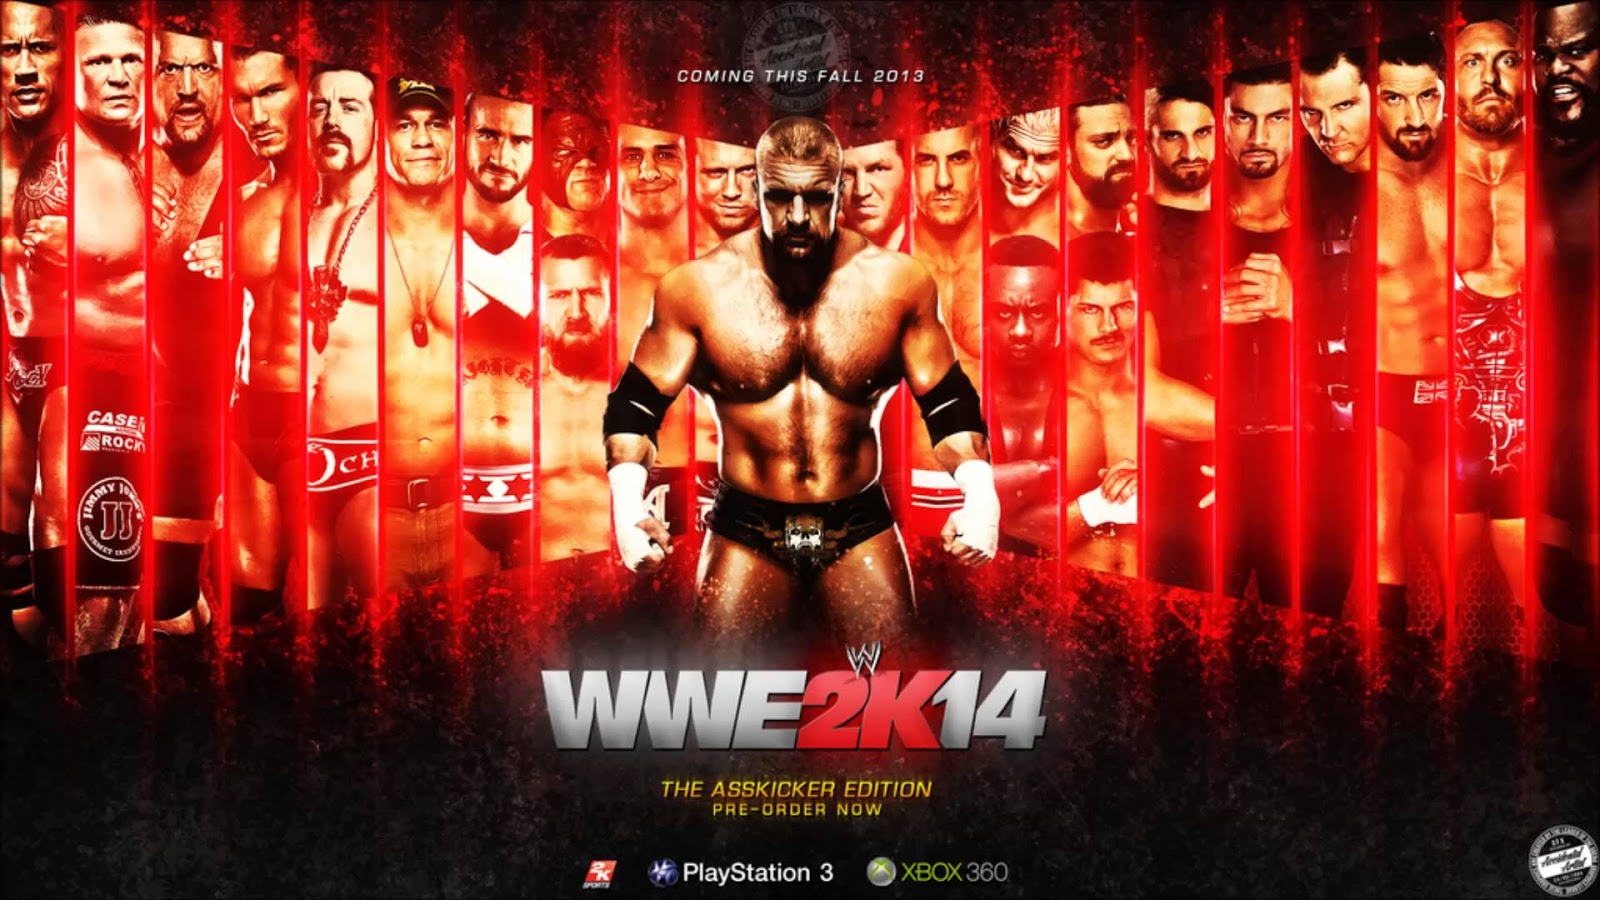 WWE 2K14  Cover  gameplay trailers and roster informationXbox One Wwe 2k14